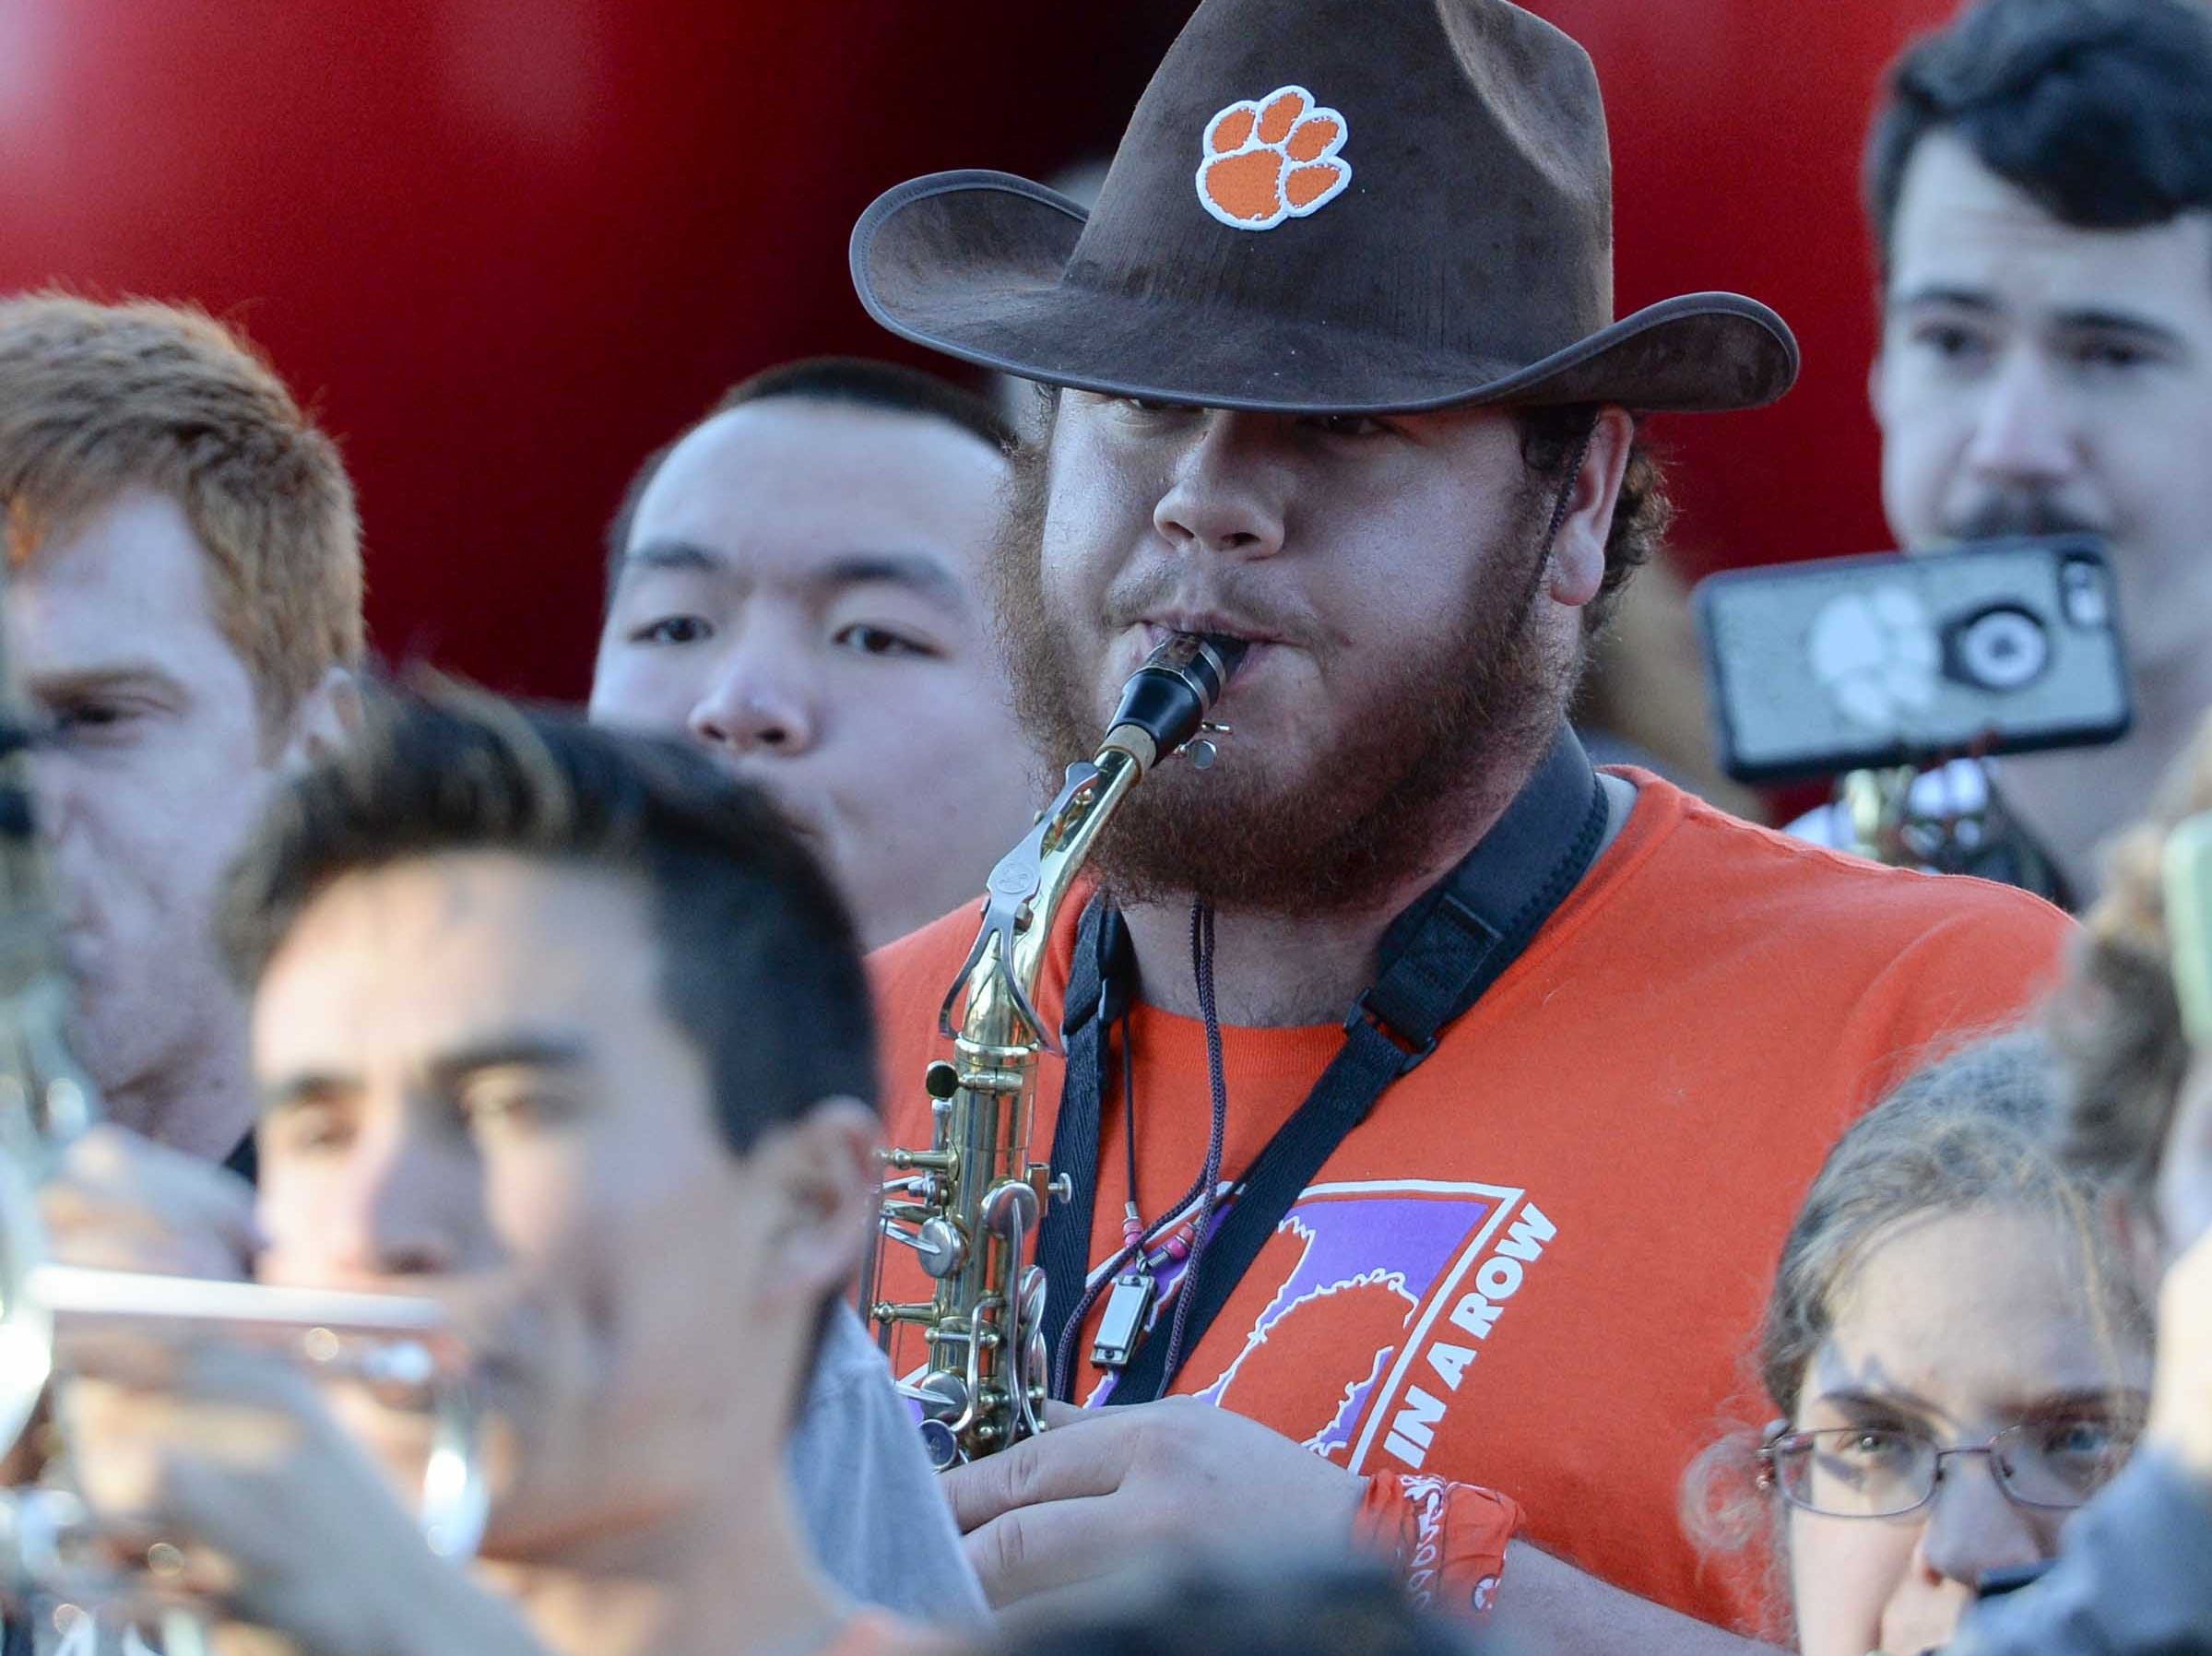 Joshua Stapleton, middle, wears a cowboy hat during Clemson Band practice outside the Omni in Dallas December 27, 2018.